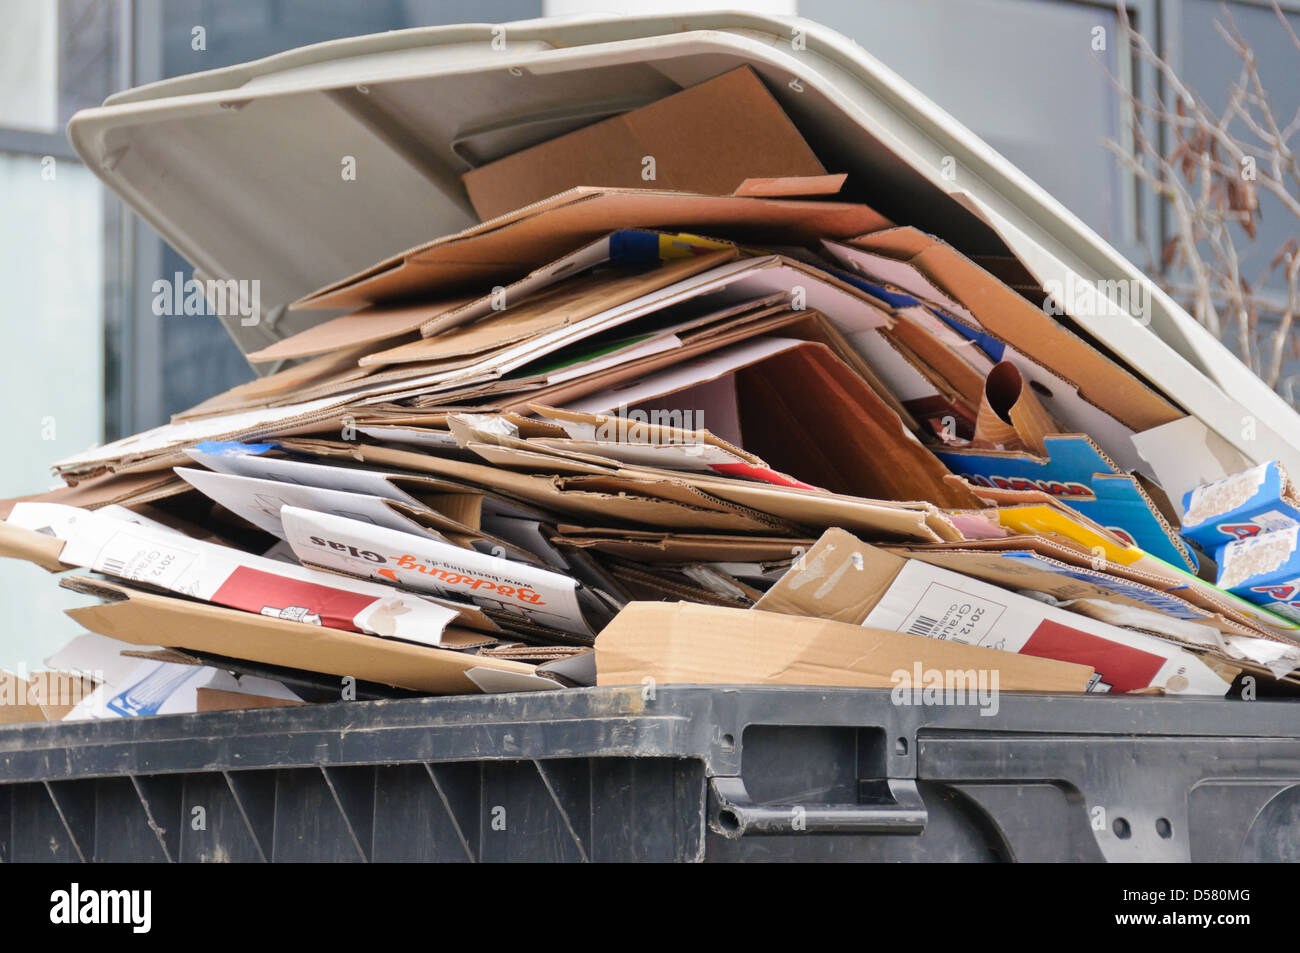 Garbage bin, trash can, overfilled with cardboard packaging - Stock Image